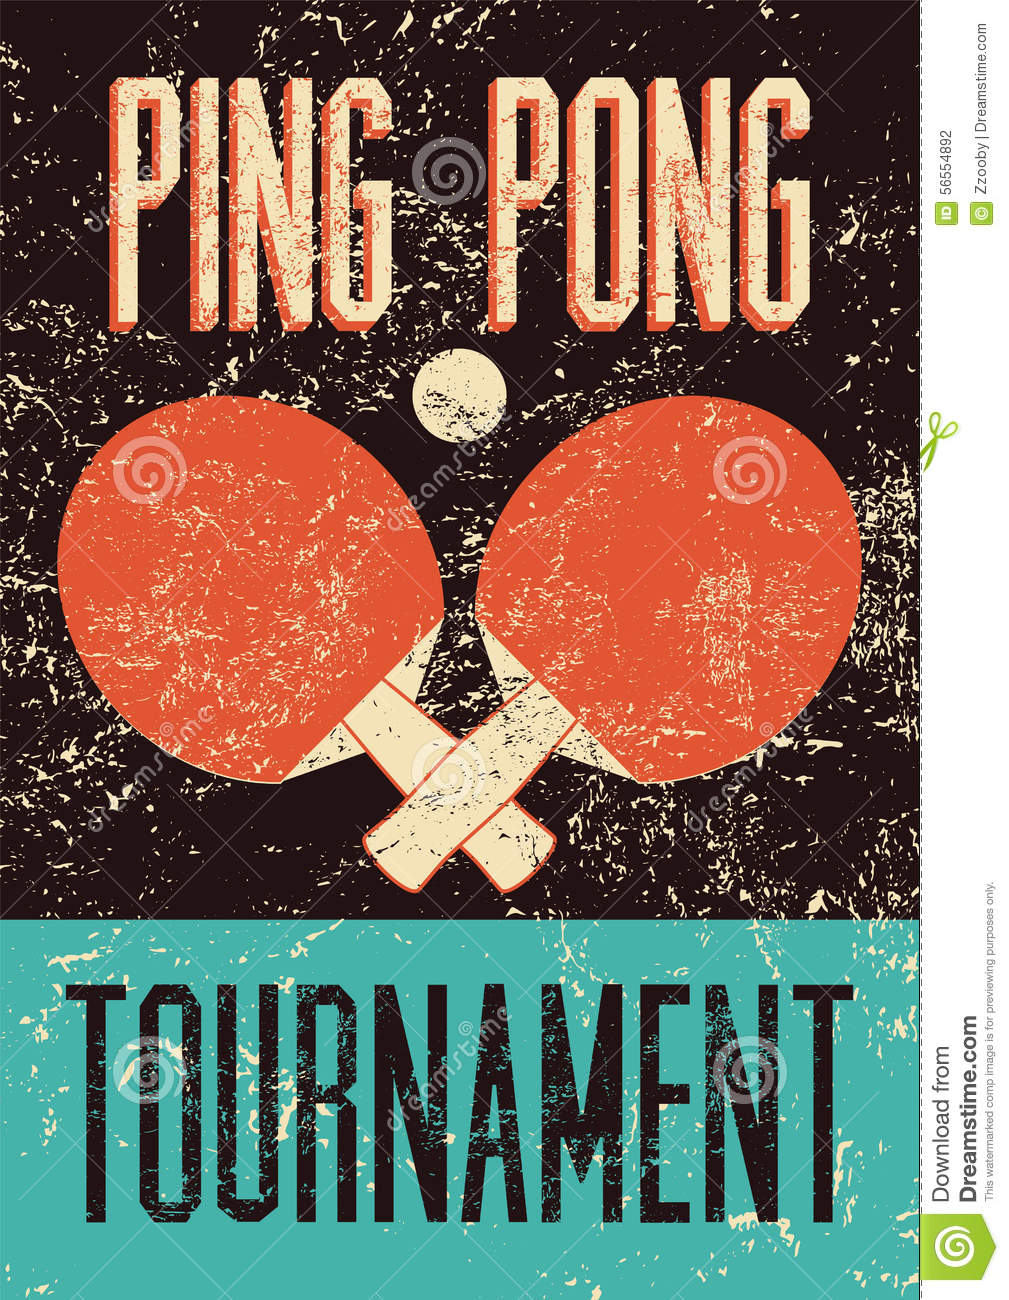 Ping Pong Typographical Vintage Grunge Style Poster Retro